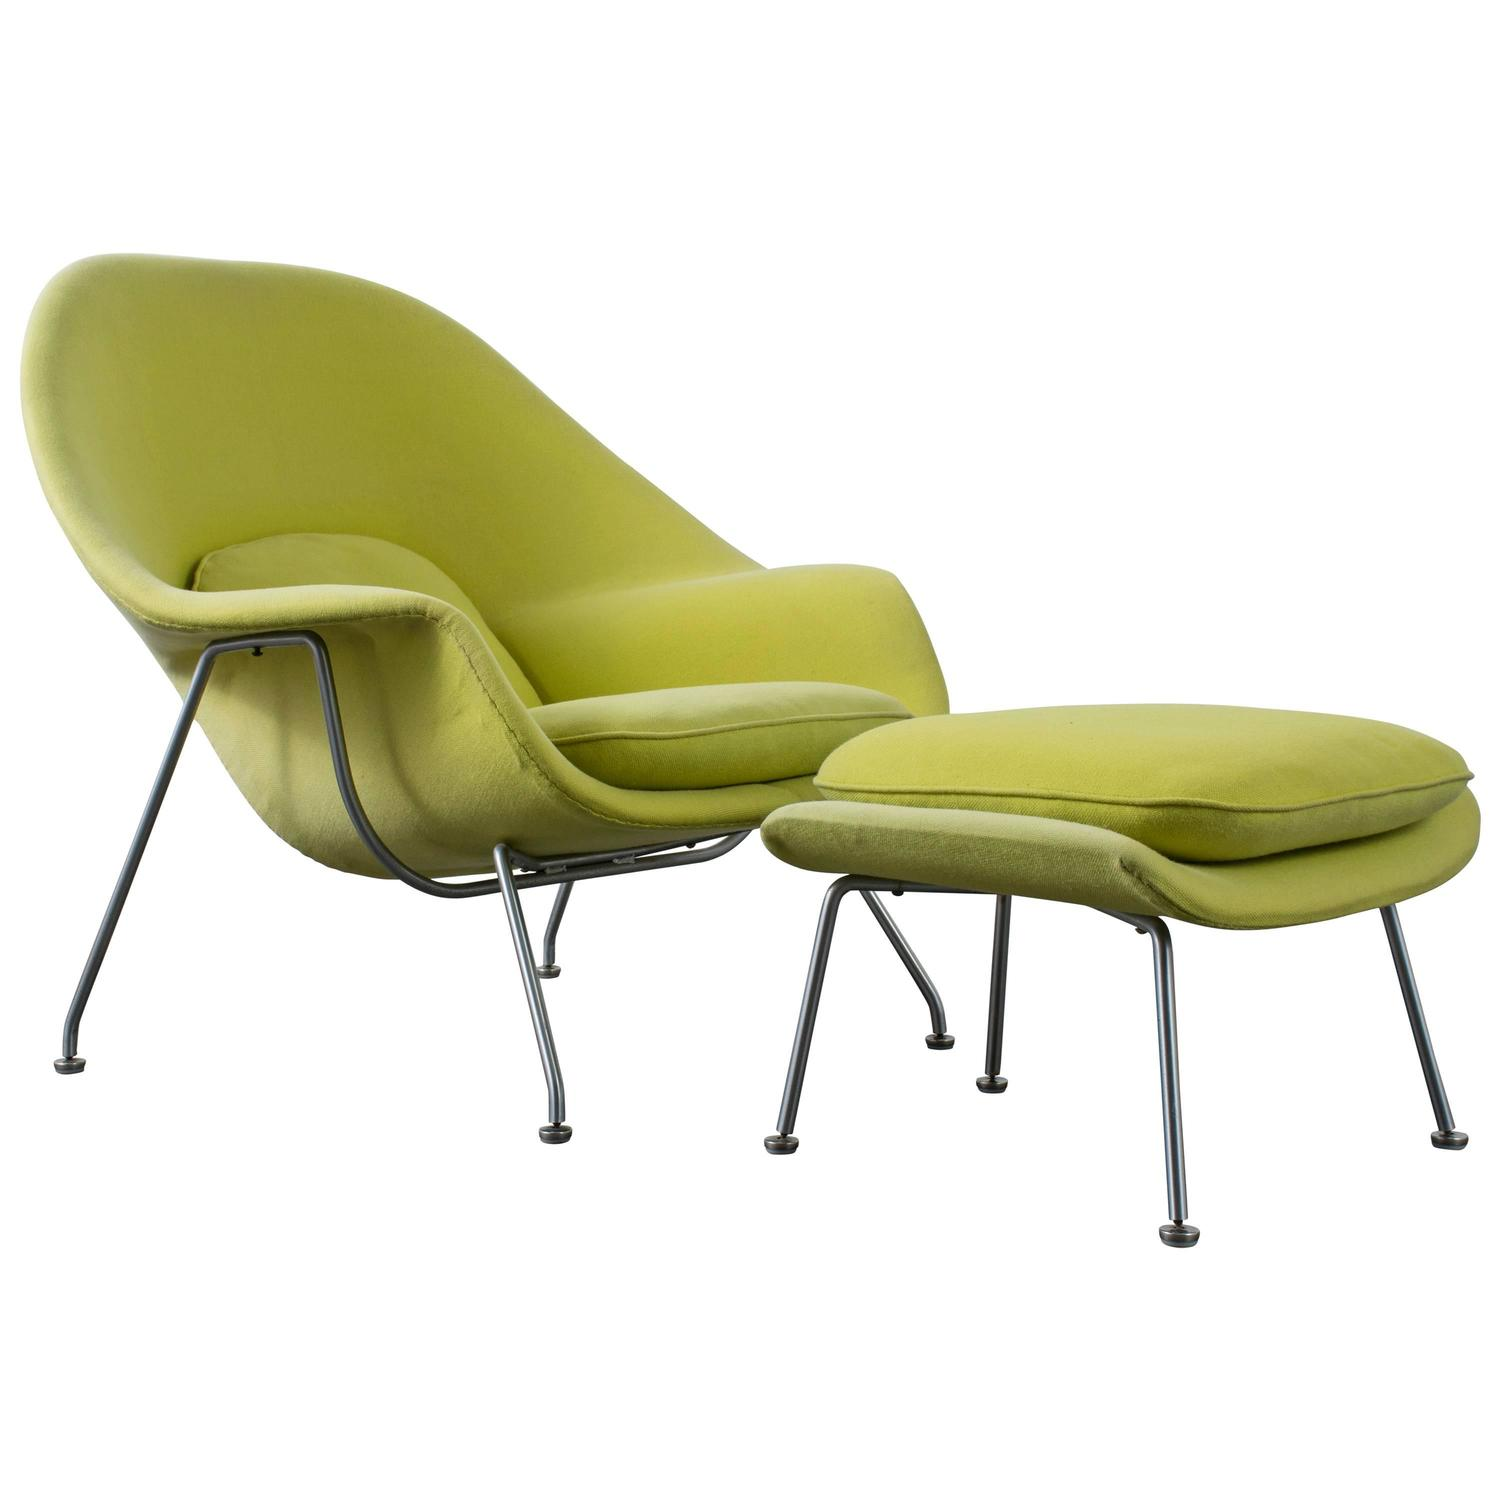 womb chair by eero saarinen for knoll at 1stdibs. Black Bedroom Furniture Sets. Home Design Ideas